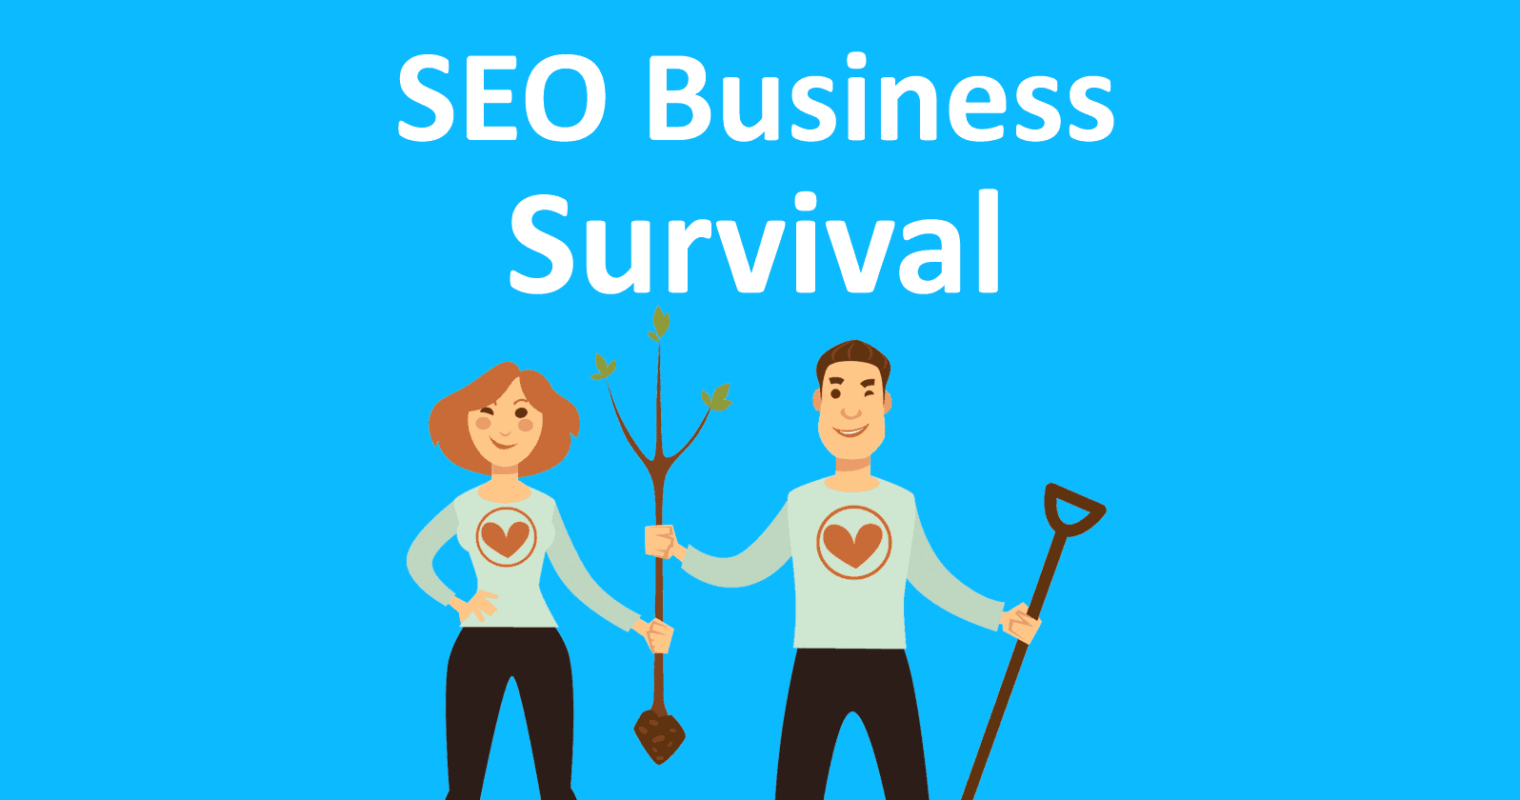 How to Keep SEO Clients and Survive in Time of Crisis